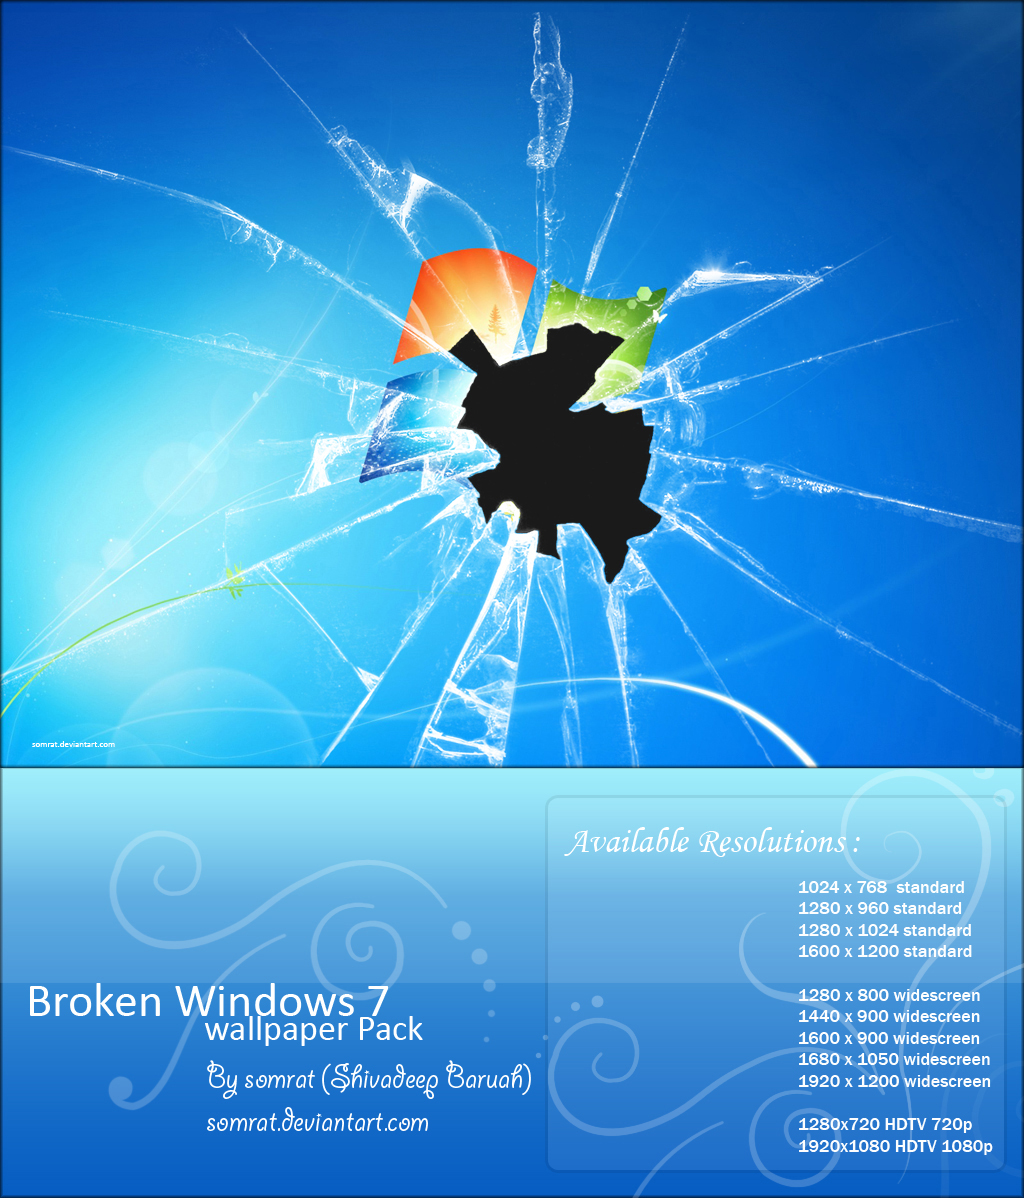 Broken Screen Wallpaper: Windows Broken Screen Wallpaper